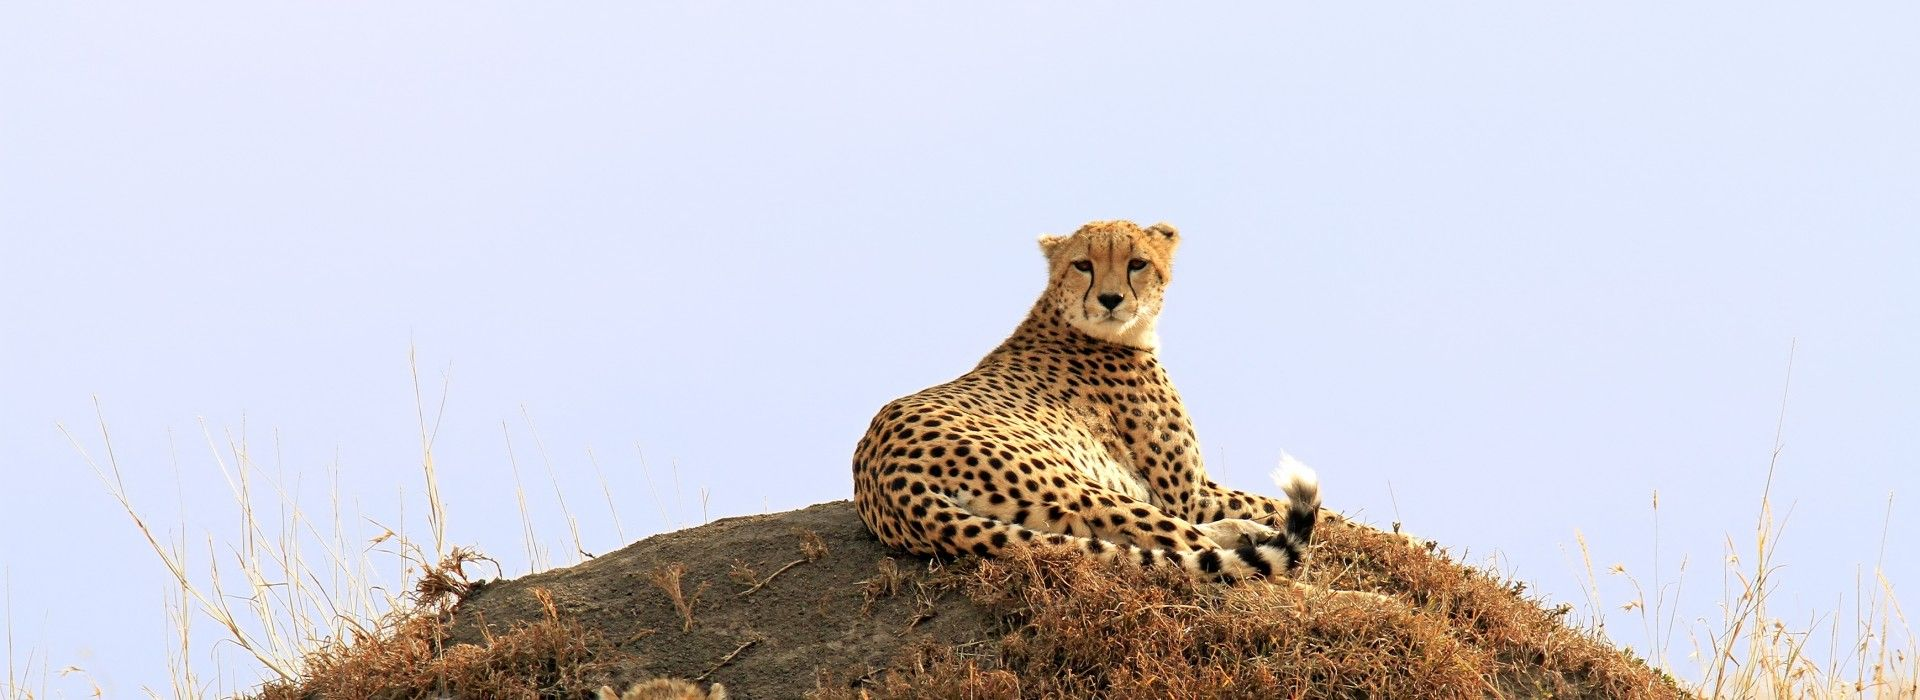 Wildlife, landscapes and nature Tours in Nairobi